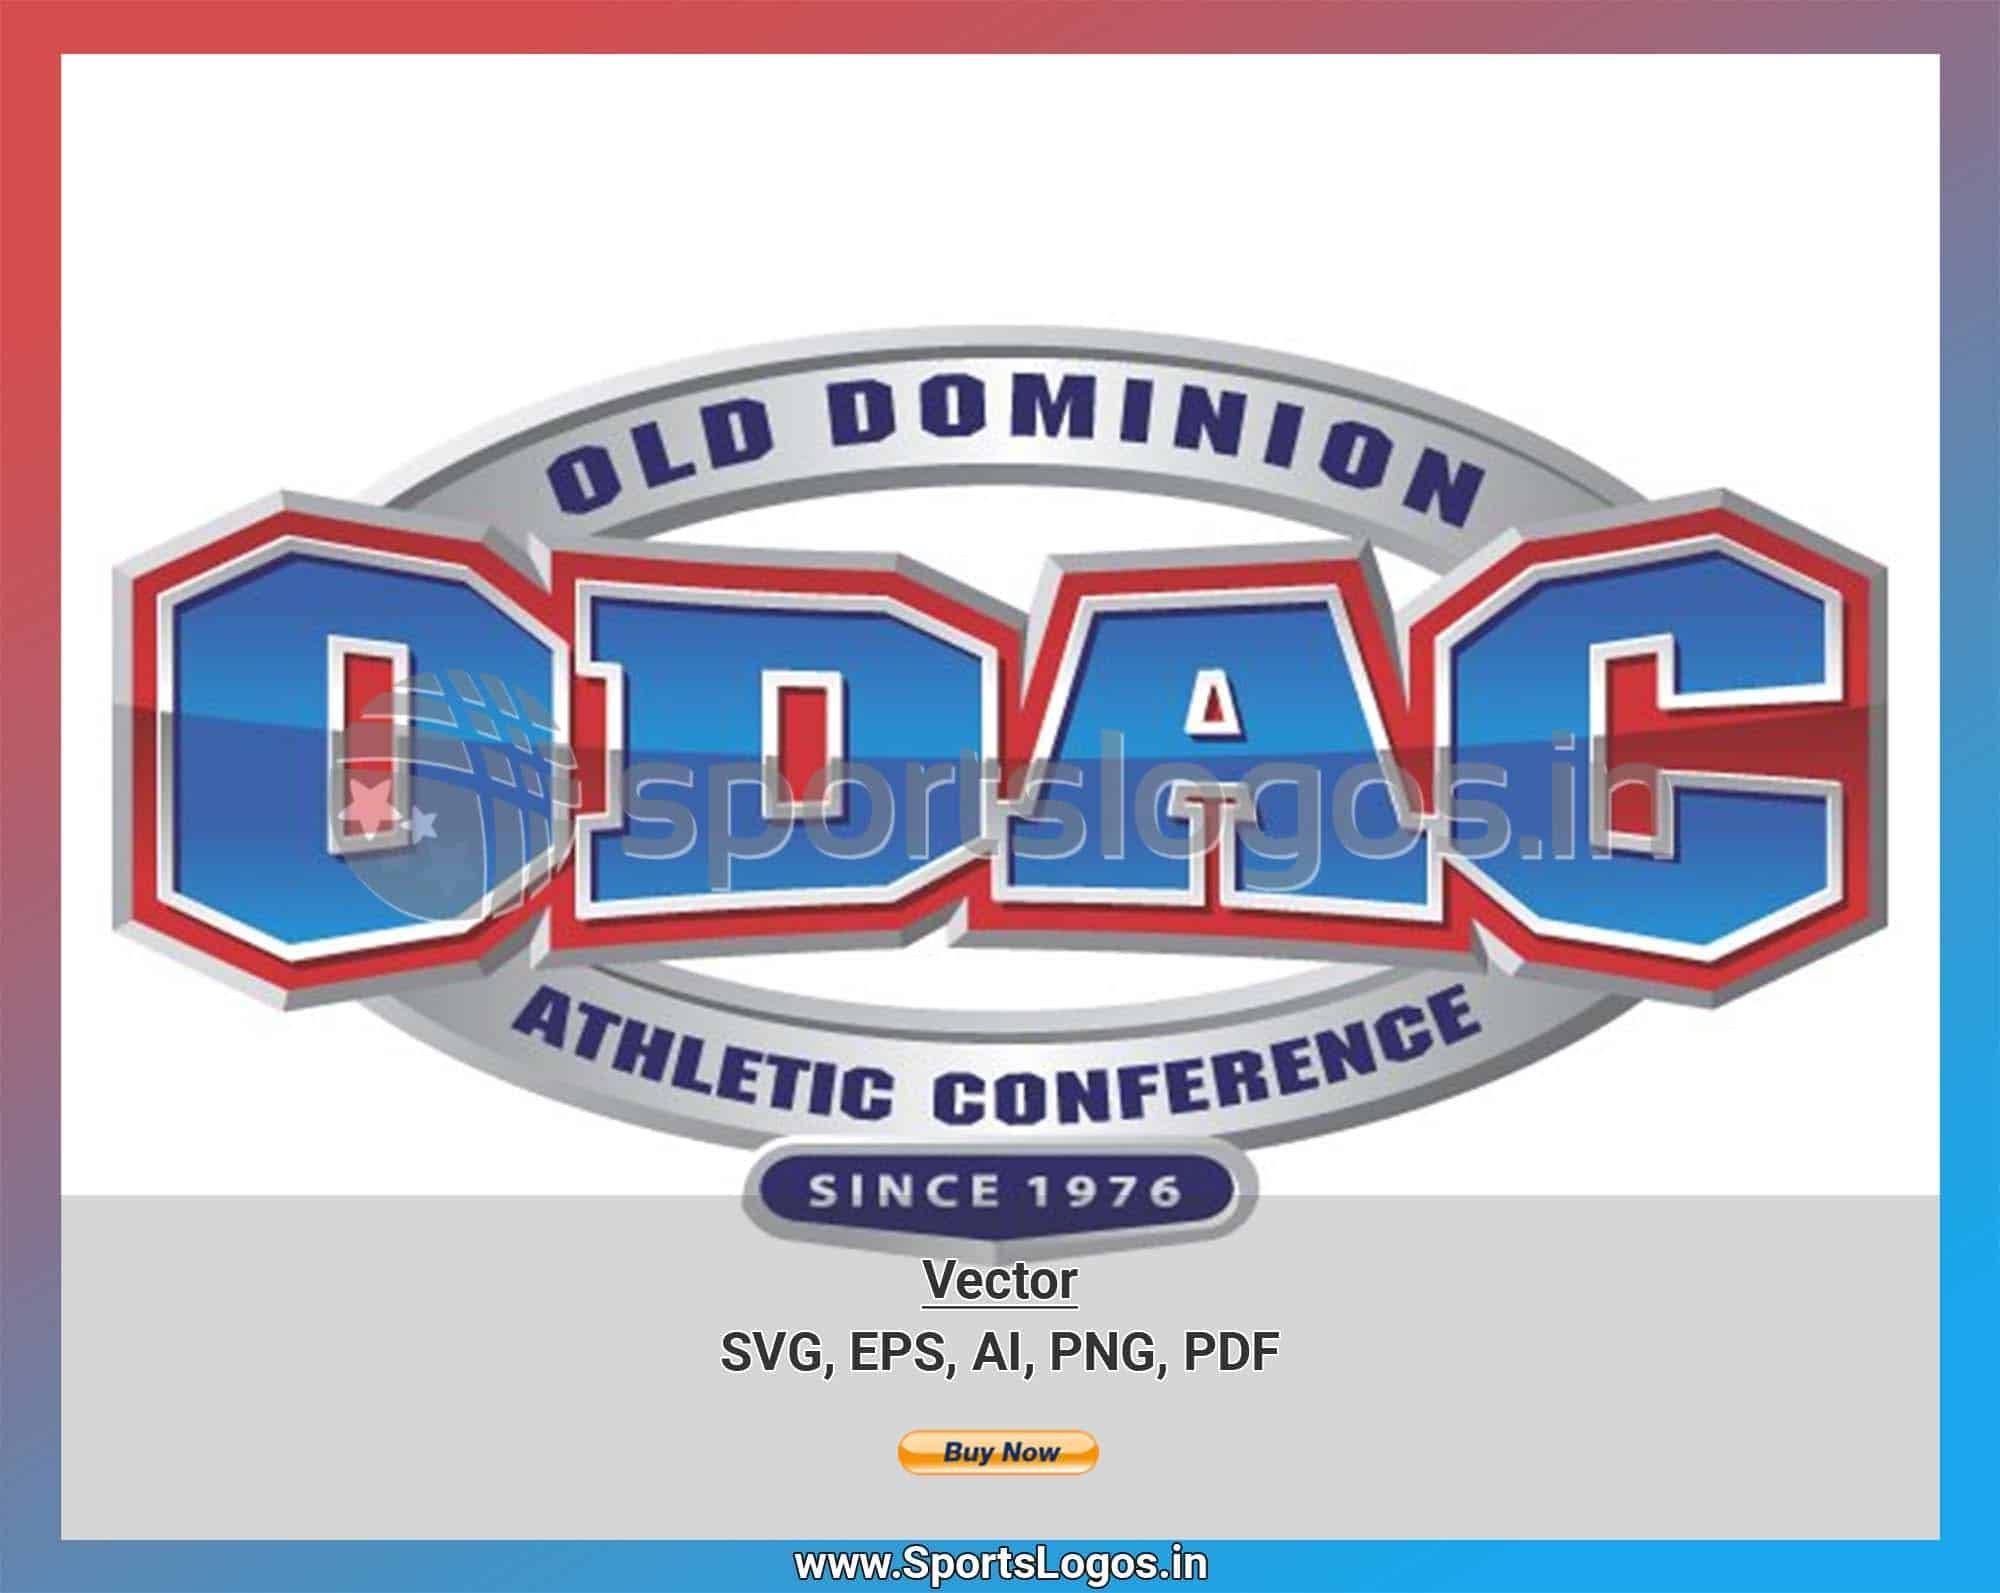 Old Dominion Athletic Conference 2011, NCAA Division III